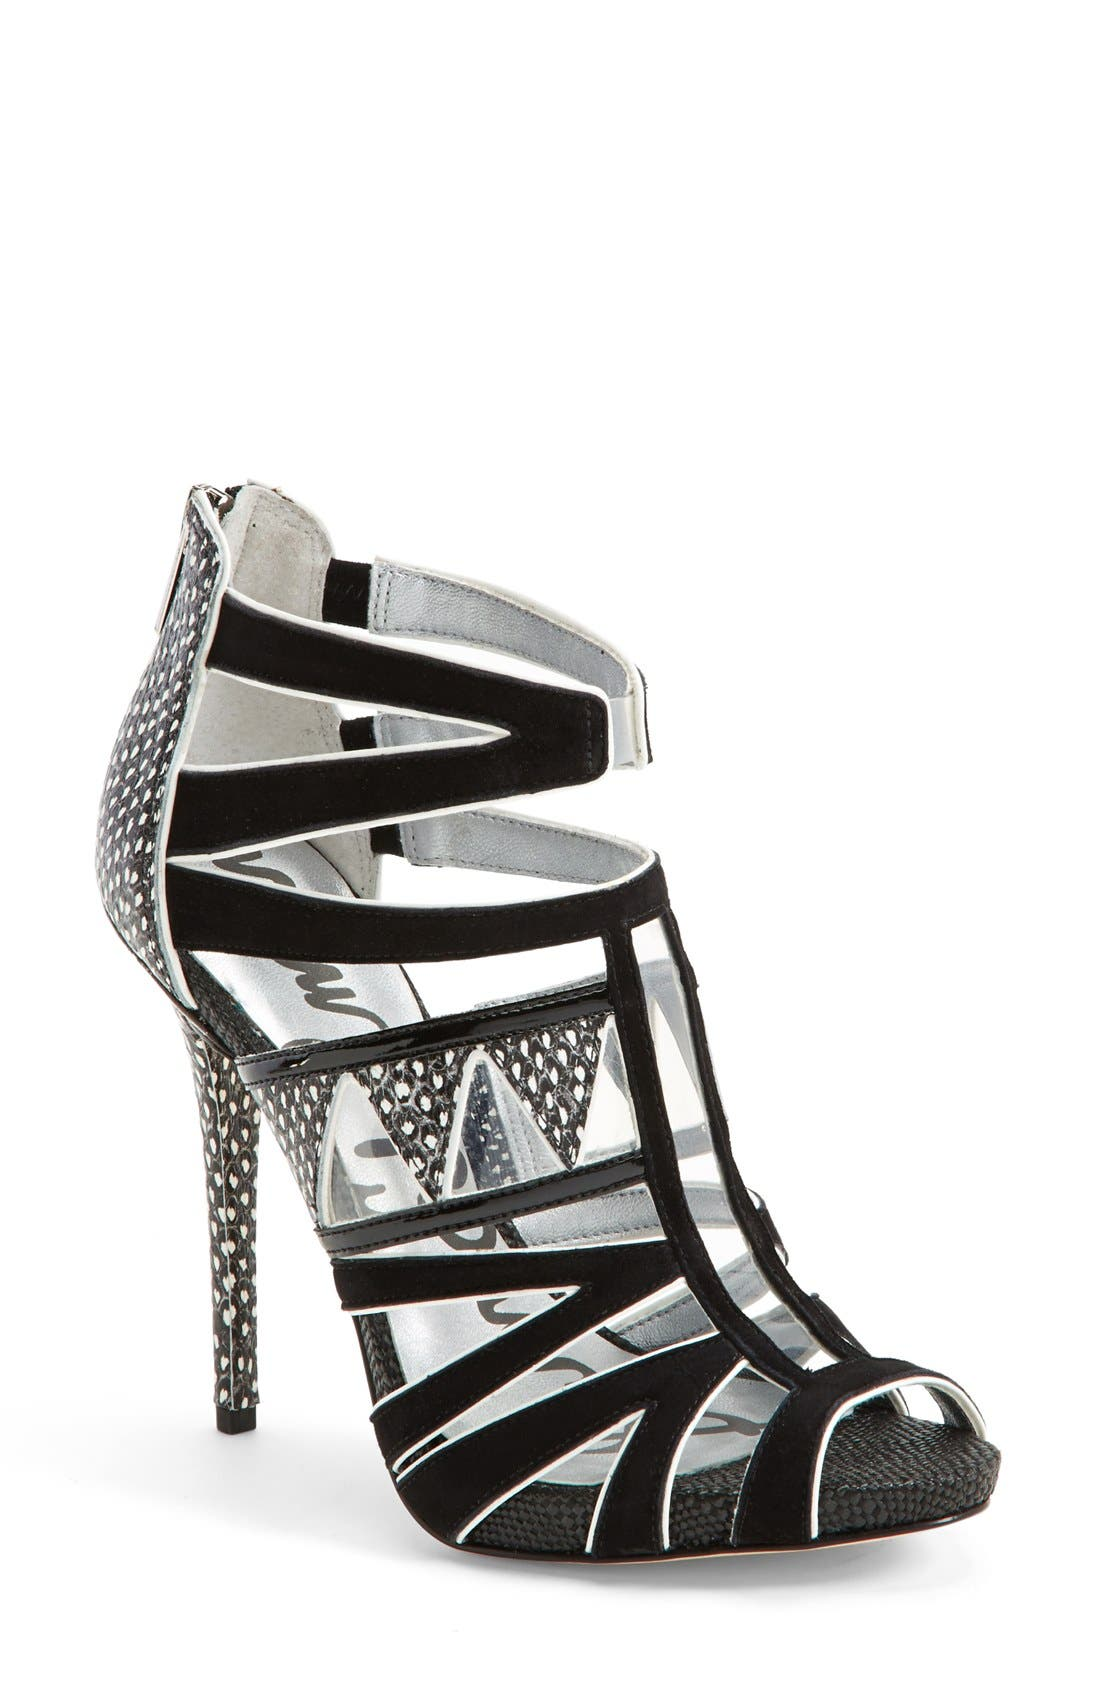 Main Image - Sam Edelman 'Jazz' Snake Embossed Sandal (Women)